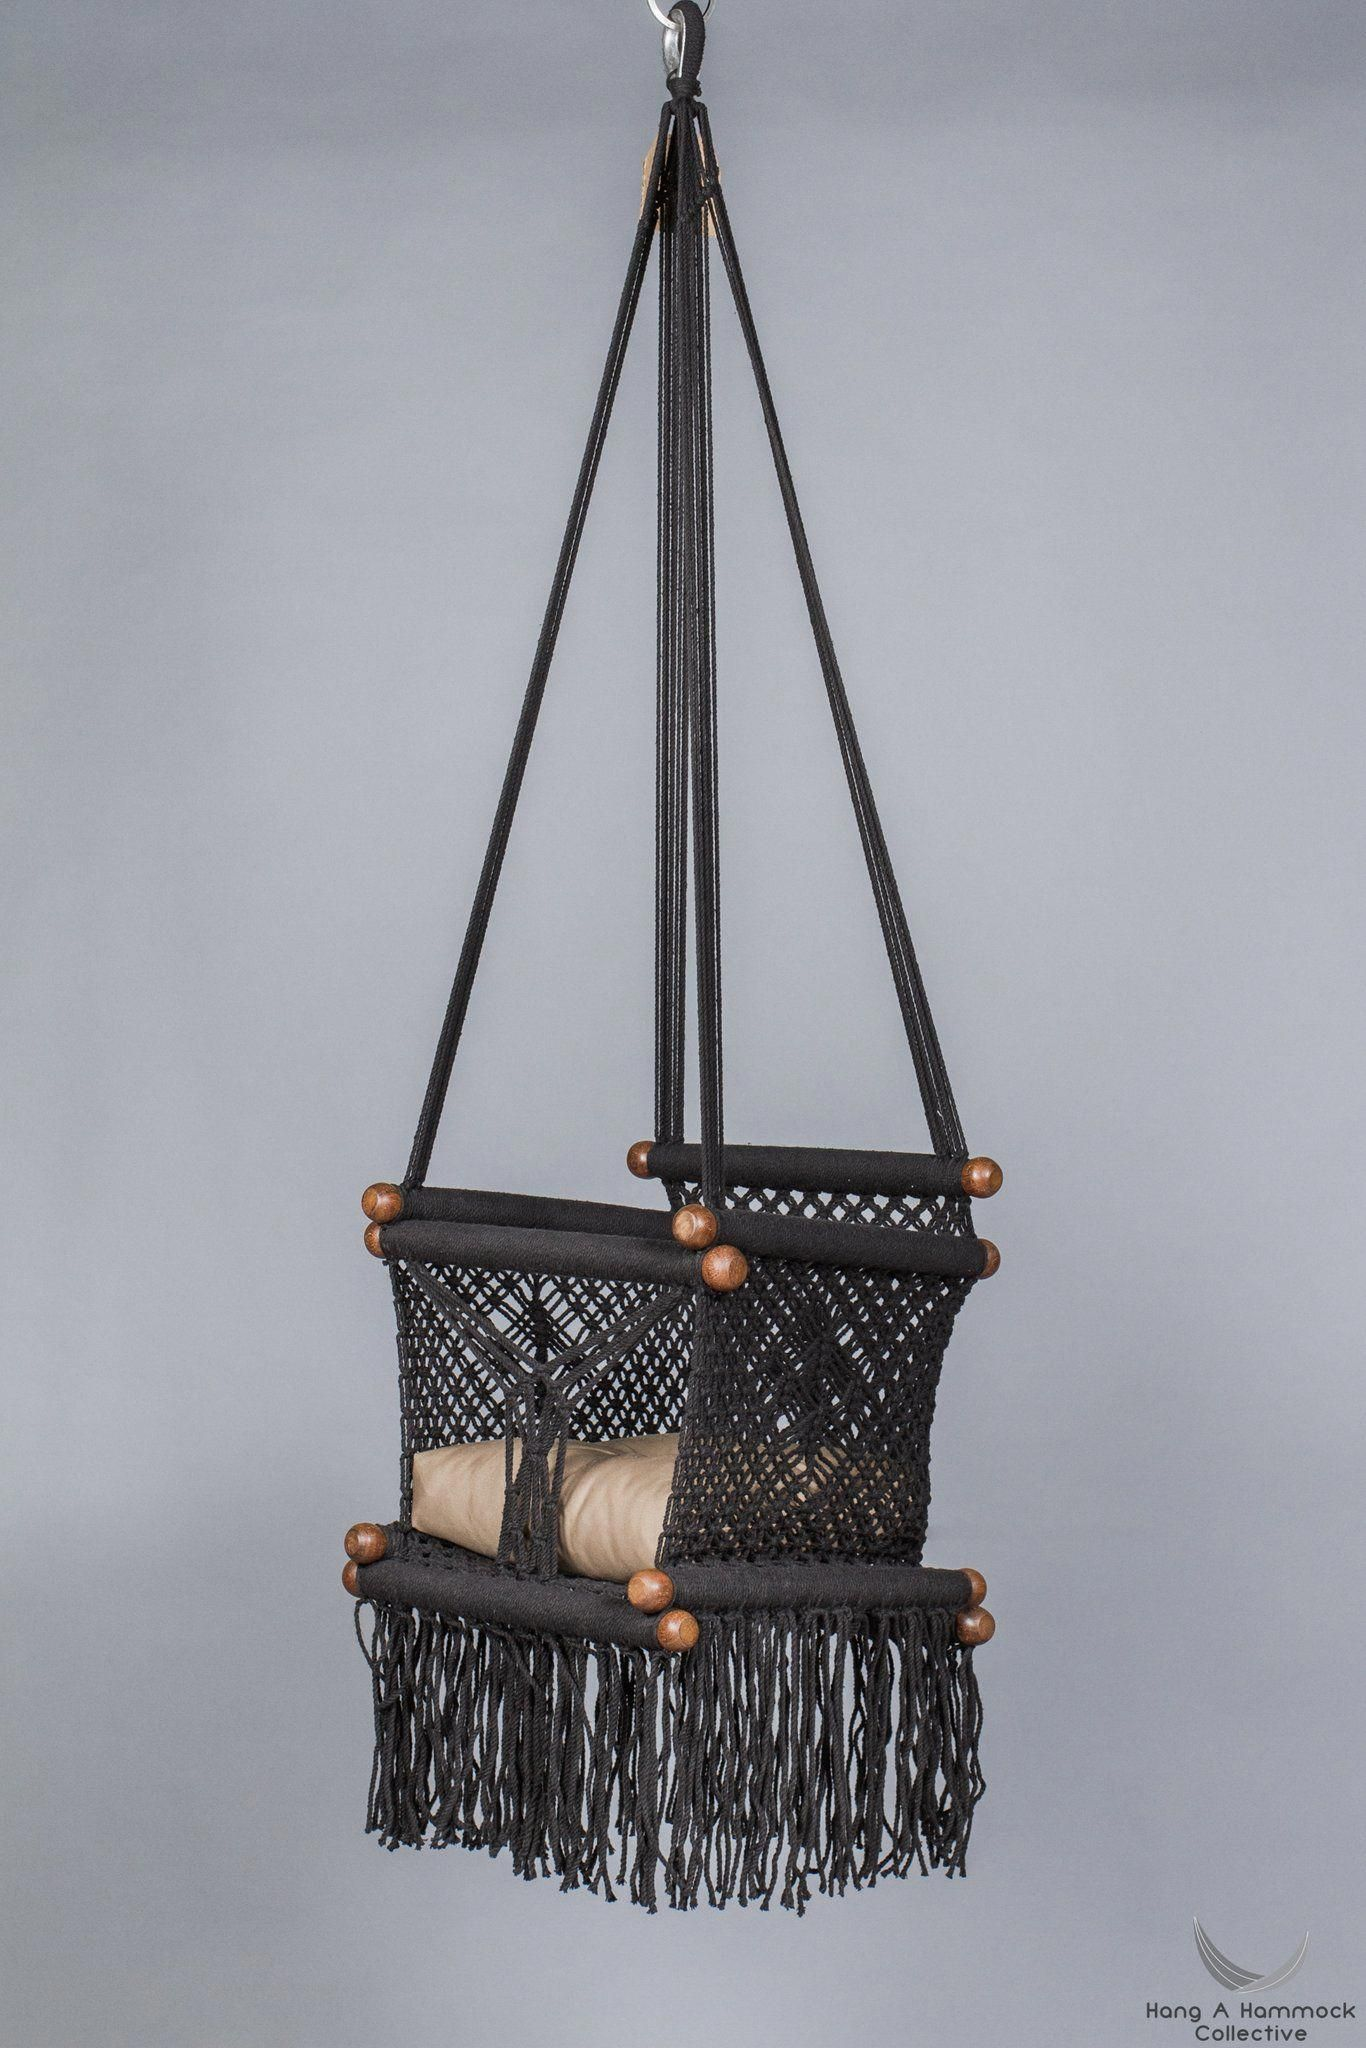 The baby swing chair is handmade with macrame tequniques this swing